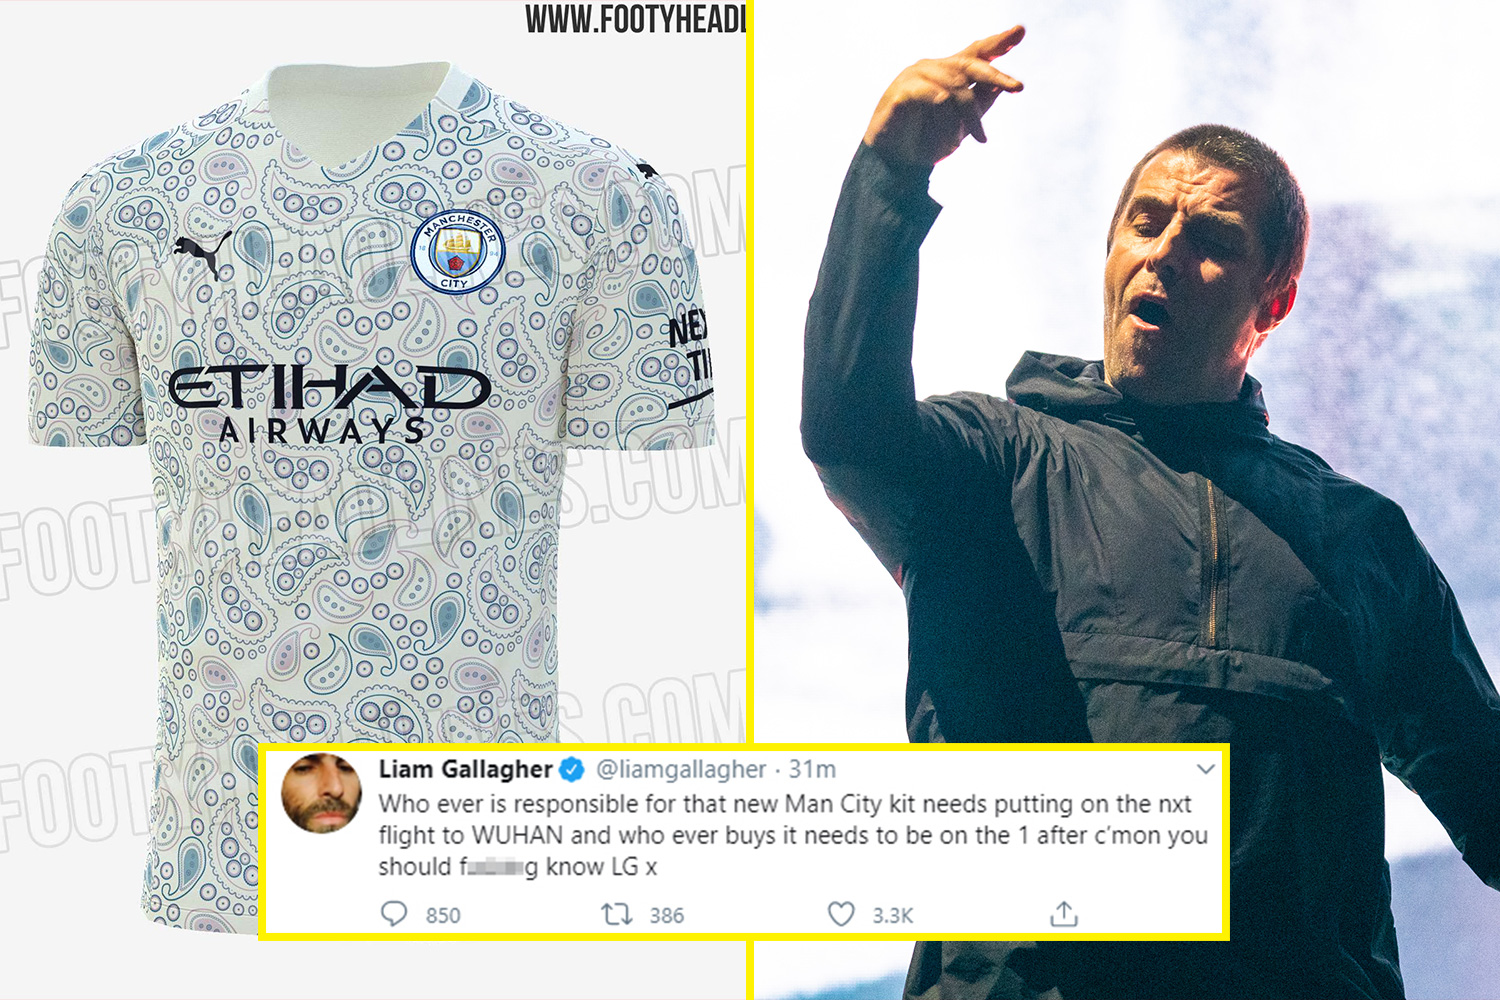 Manchester City's third kit for 2020/21 season leaked and superfan Liam Gallagher hates it thumbnail